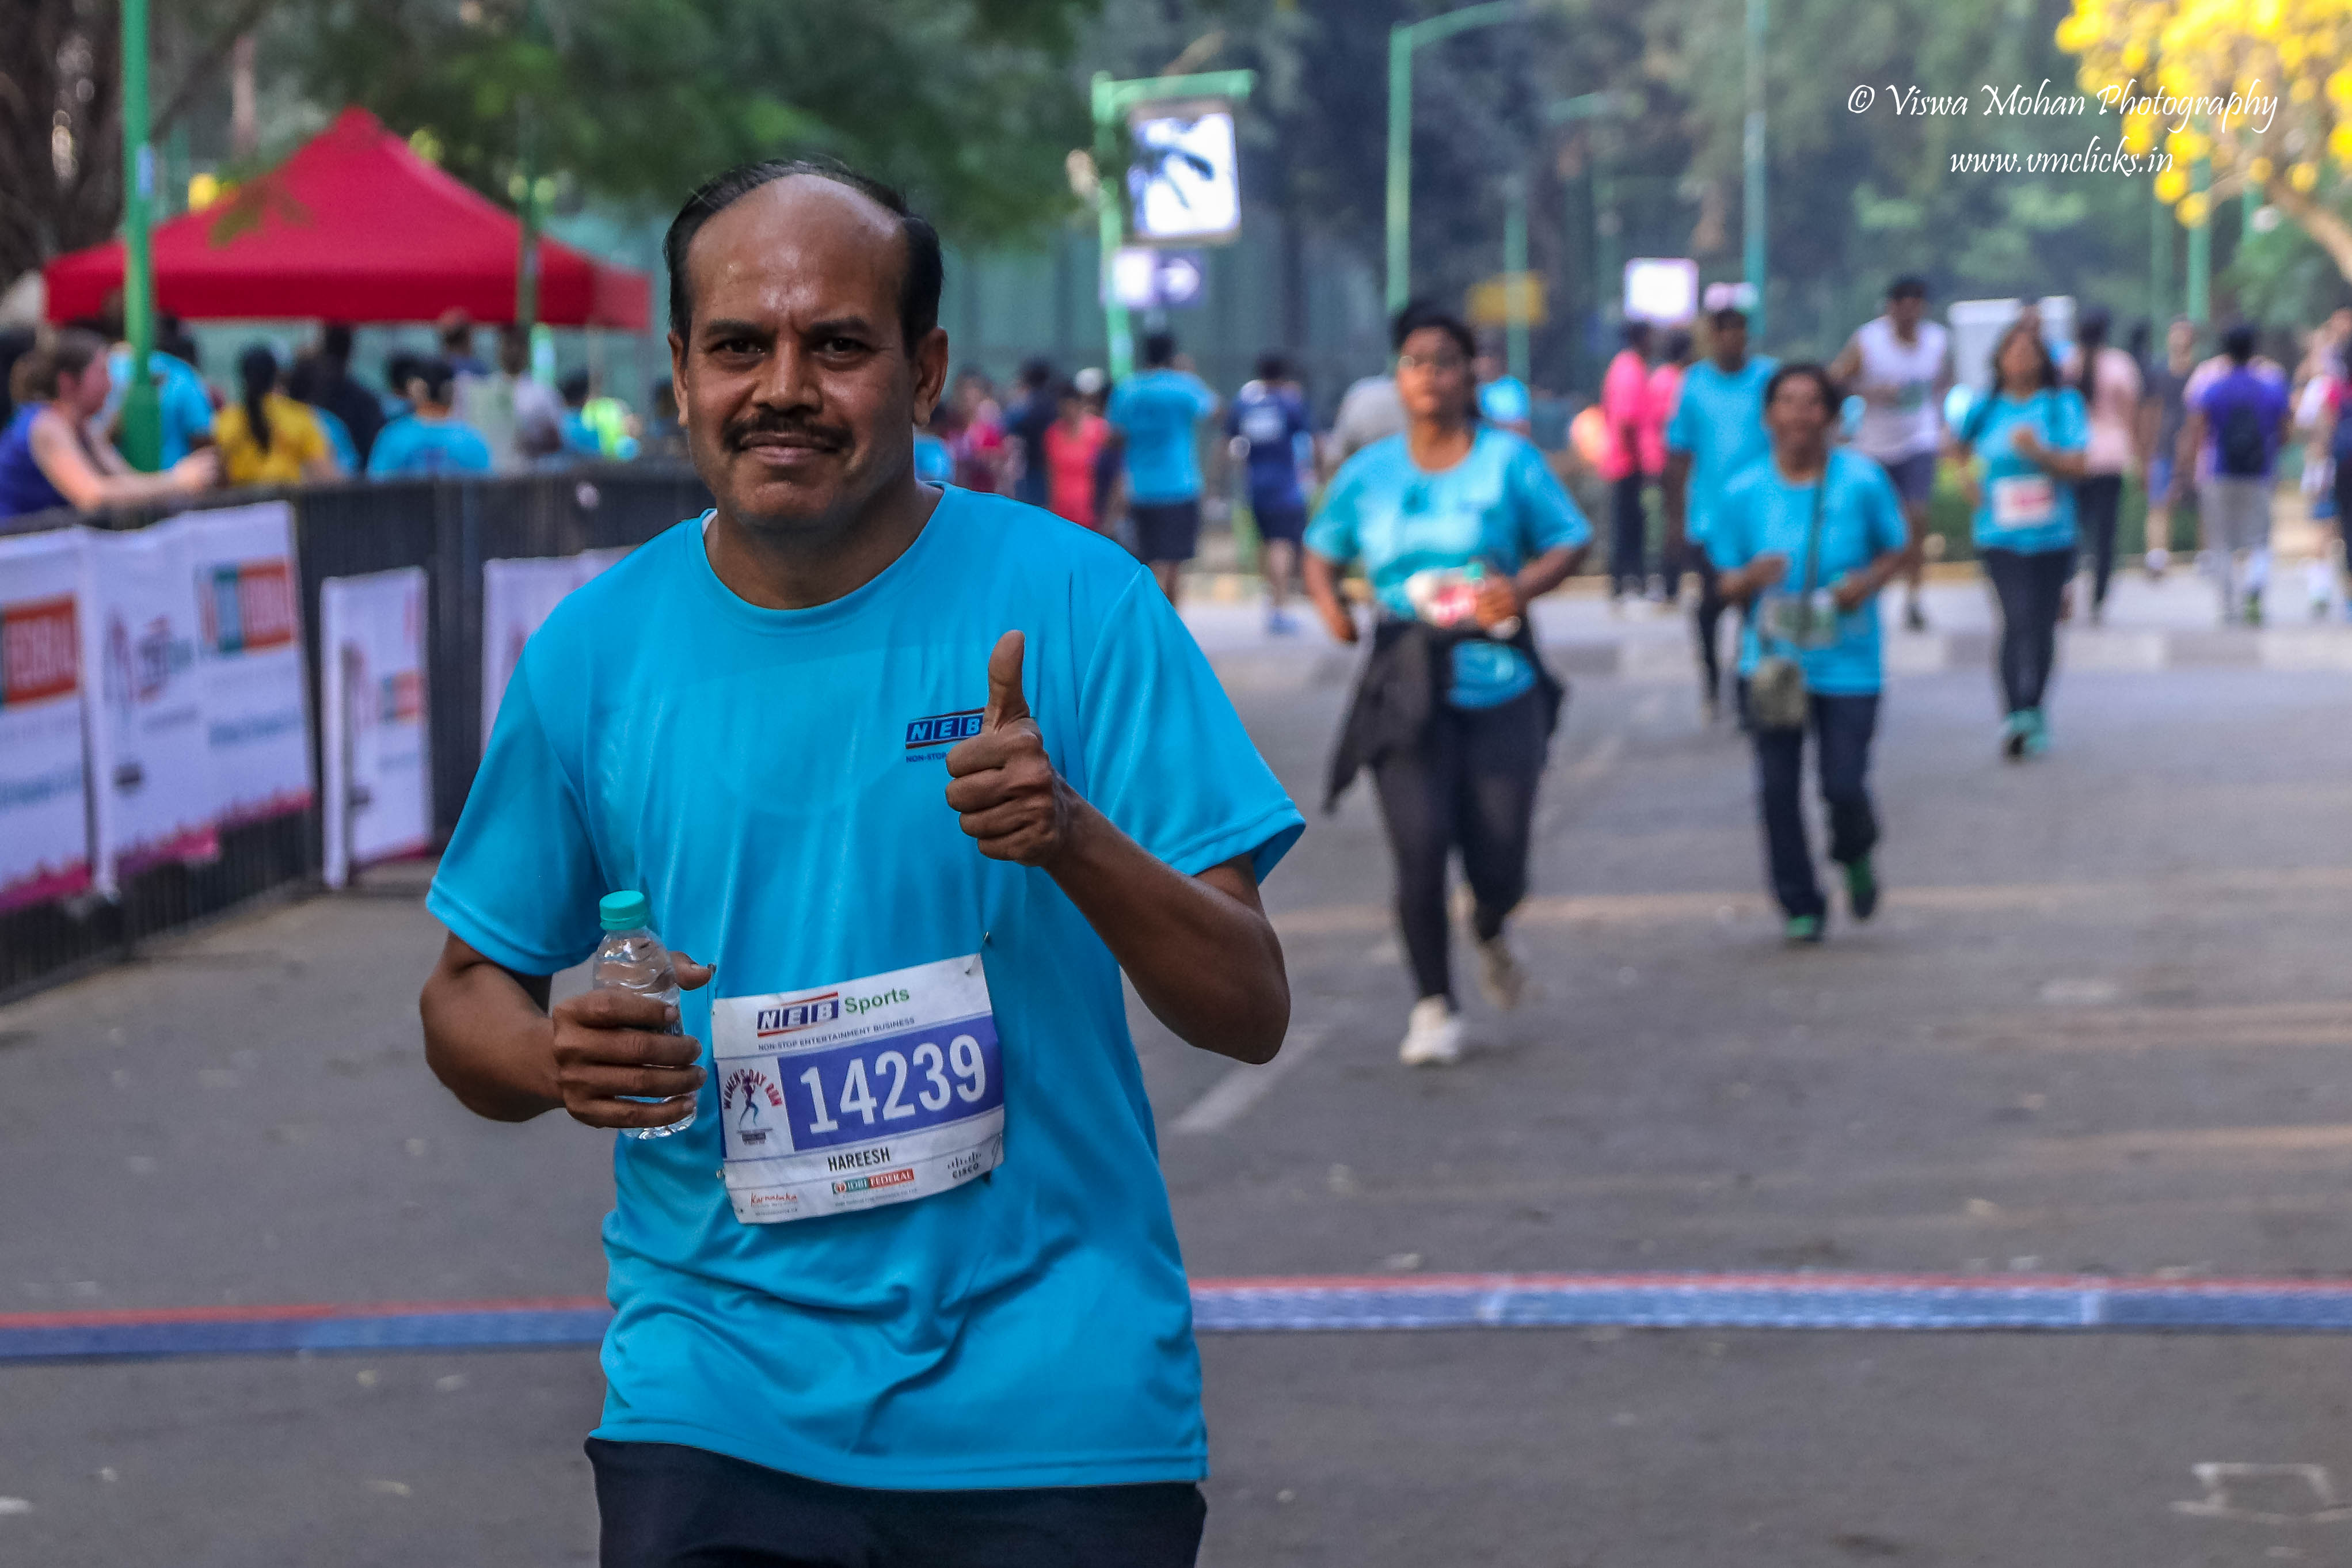 Gentleman Giving Thumsup after successful Marathon